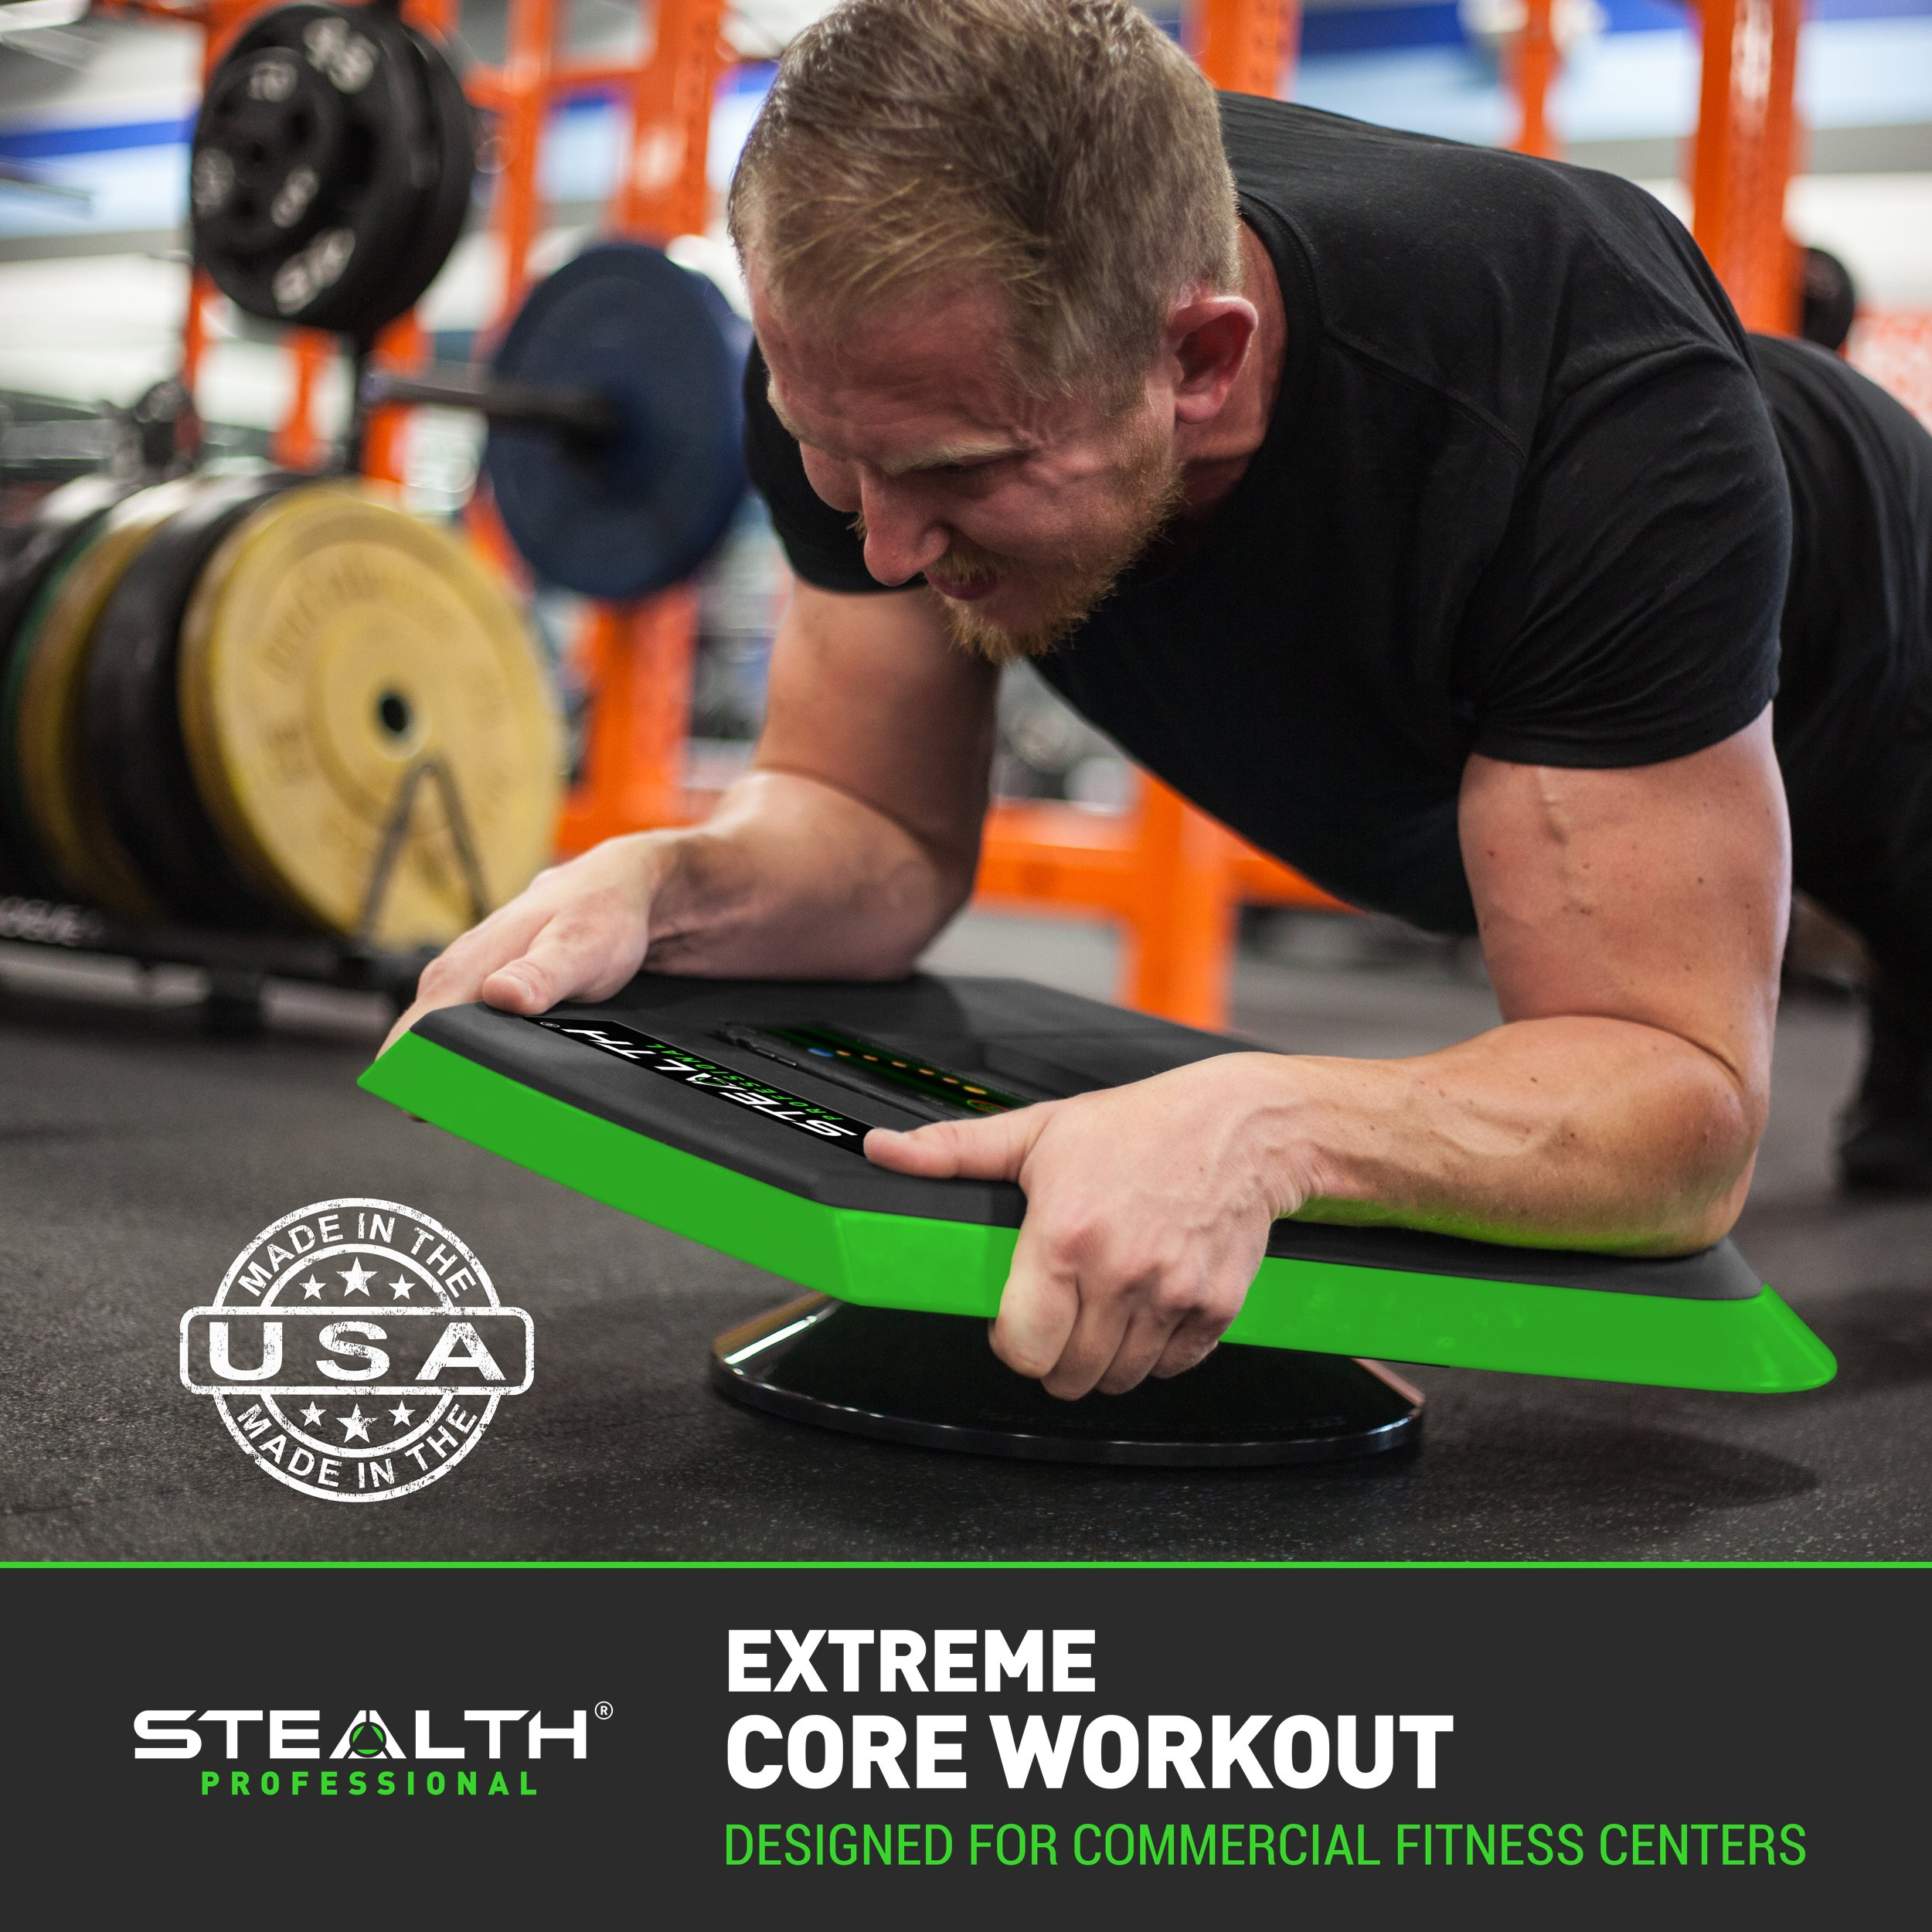 Stealth Core Trainer Professional, Dynamic Ab Plank Workout, Interactive Fitness Board Powered By GamePlay Technology For a Healthy Back and Strong Core (Glow Green) by Stealth (Image #5)